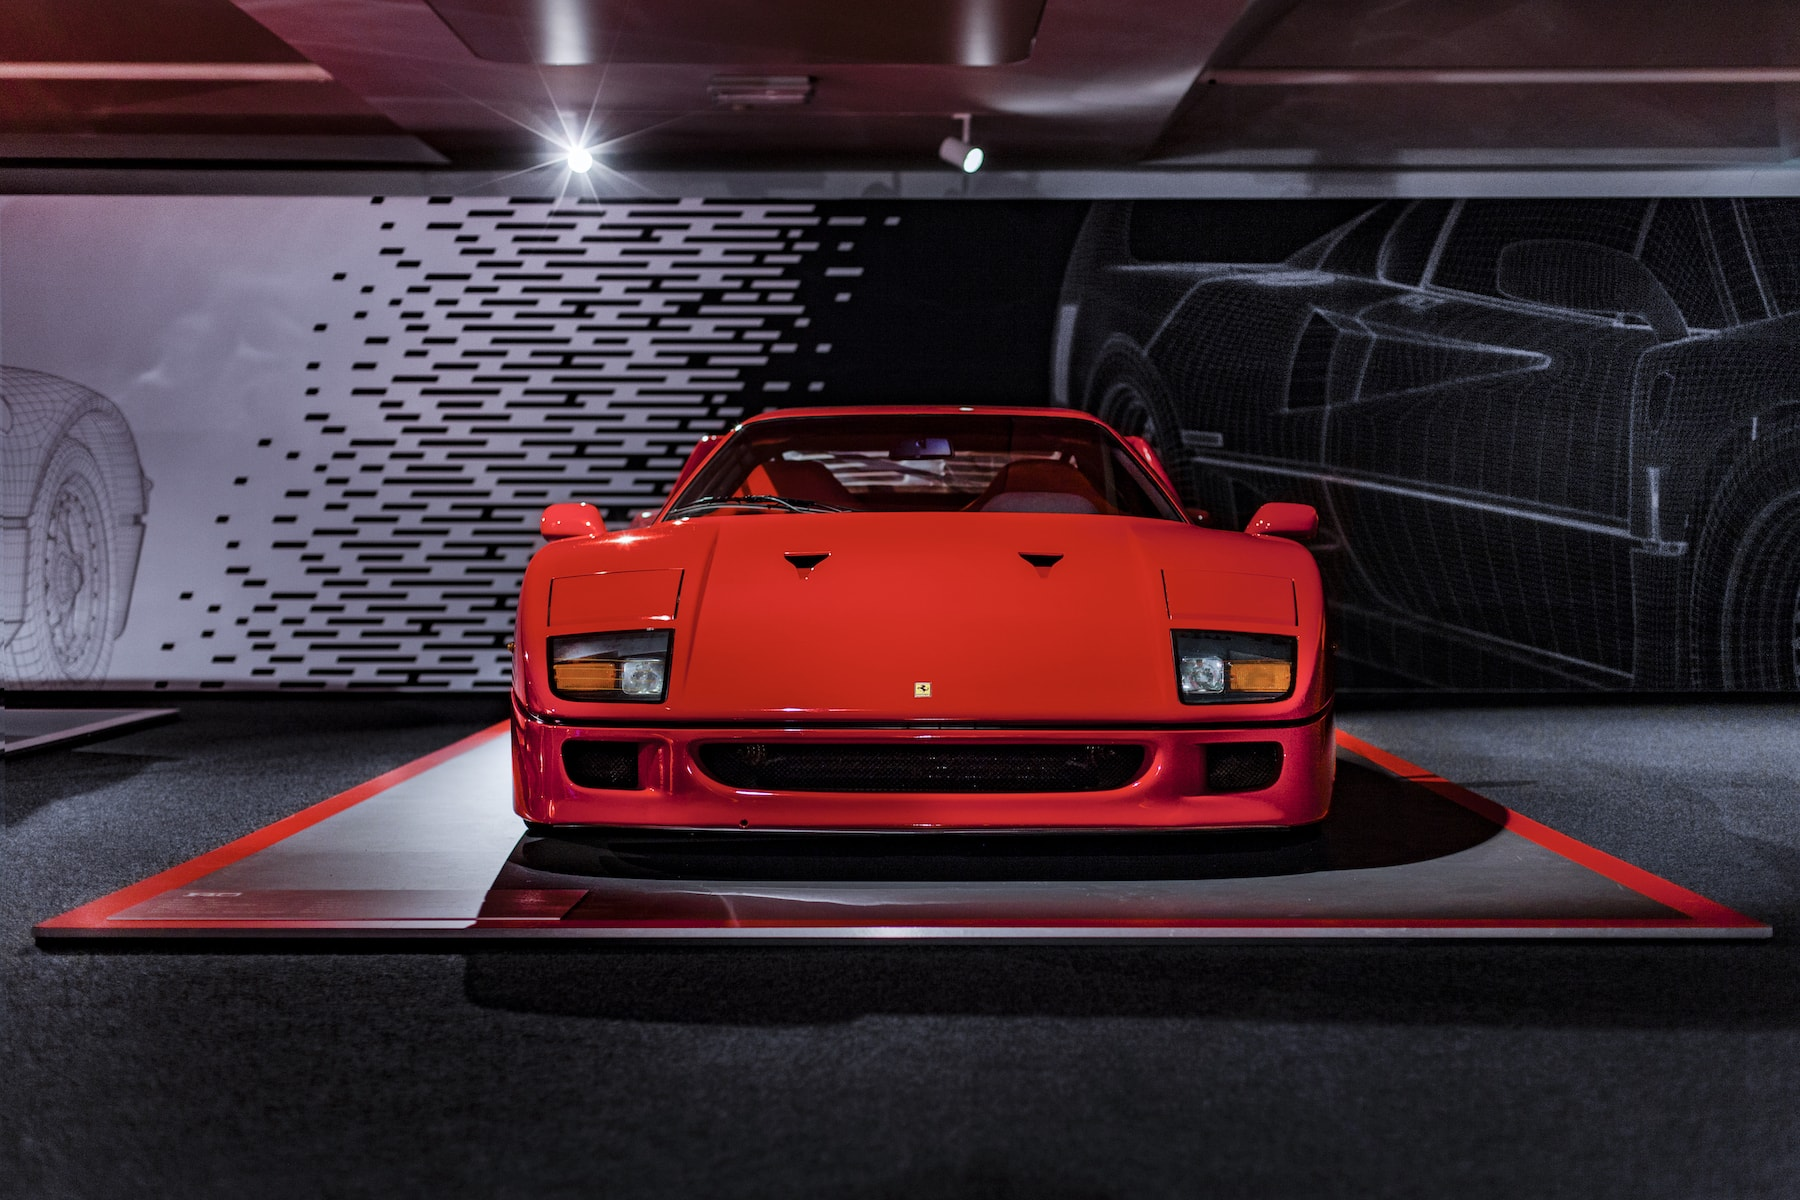 2019 Museo Ferrari 90 years exhibition 15.jpg